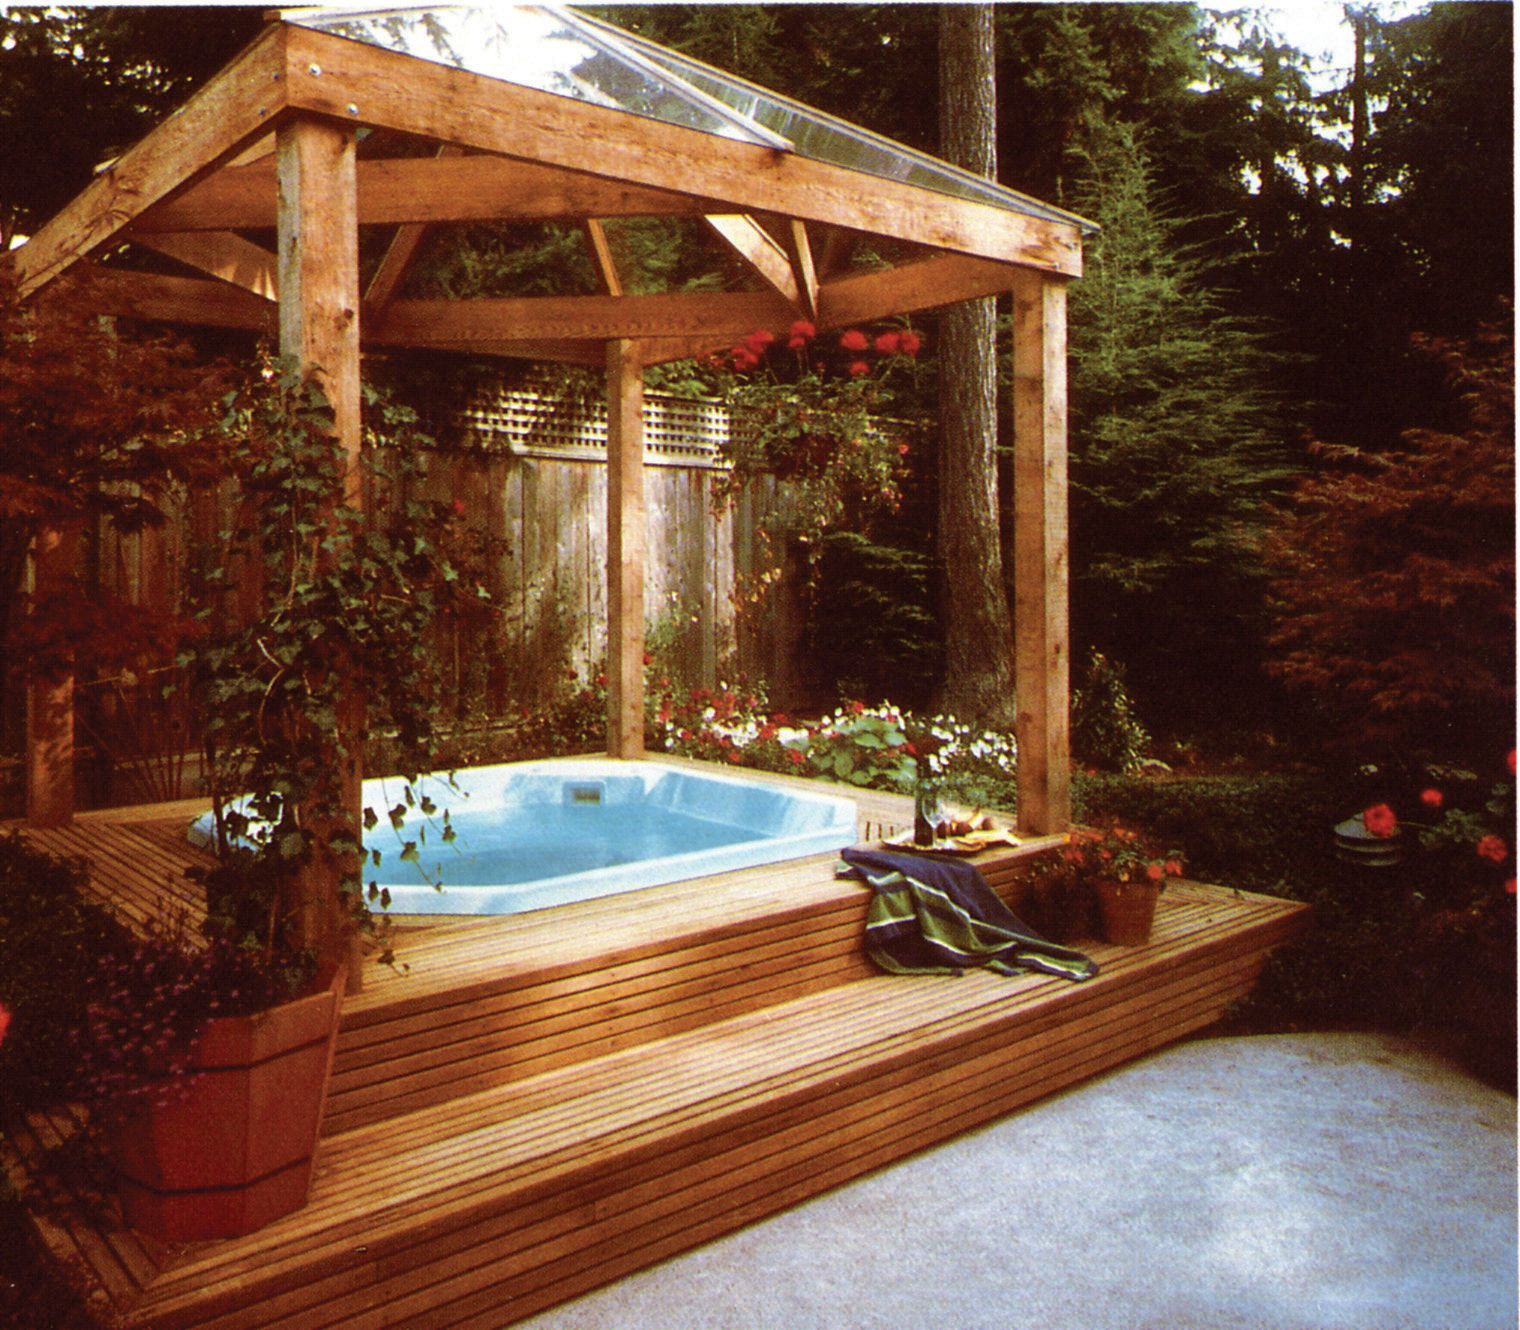 Hot tub Sanctuary?? Looks inviting... I am just thinking... this ...